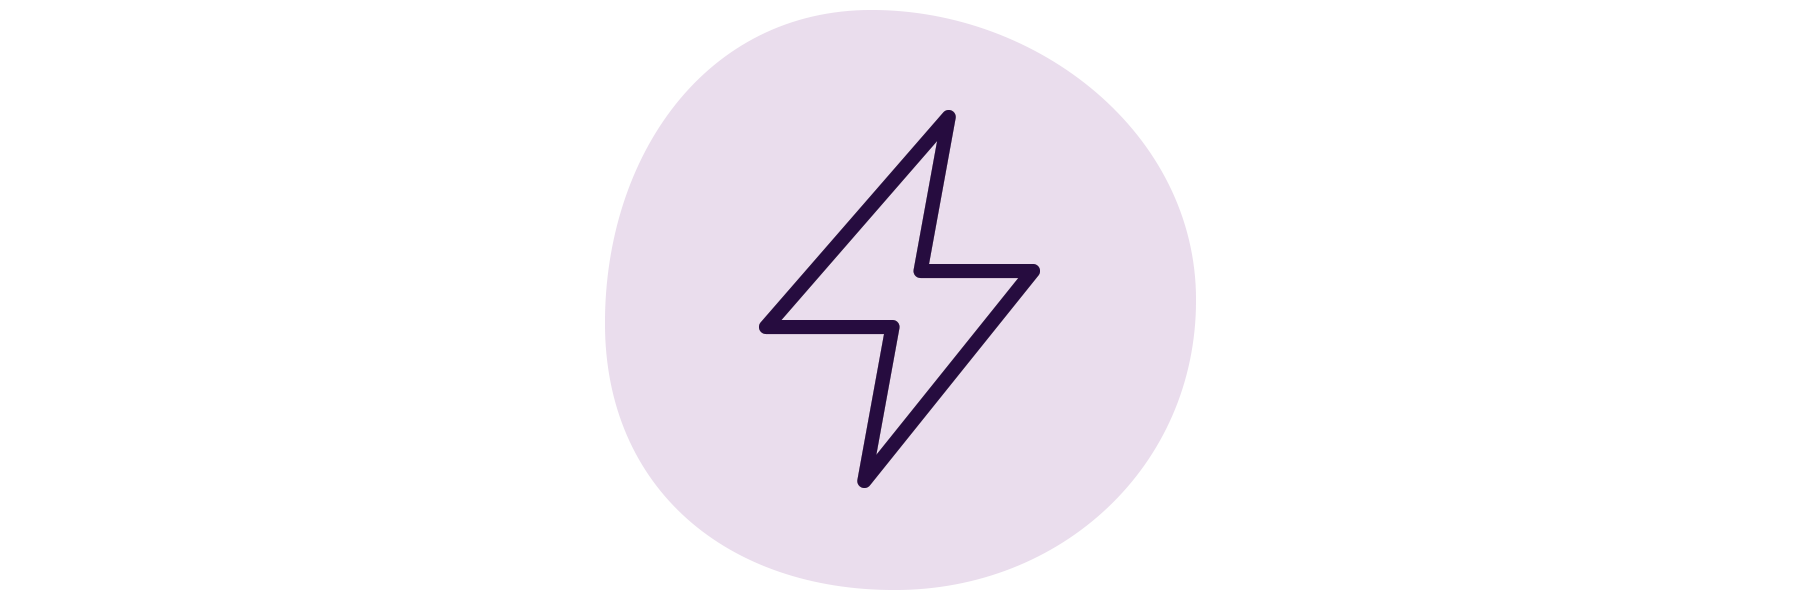 A purple, hand-drawn lightning bolt icon.